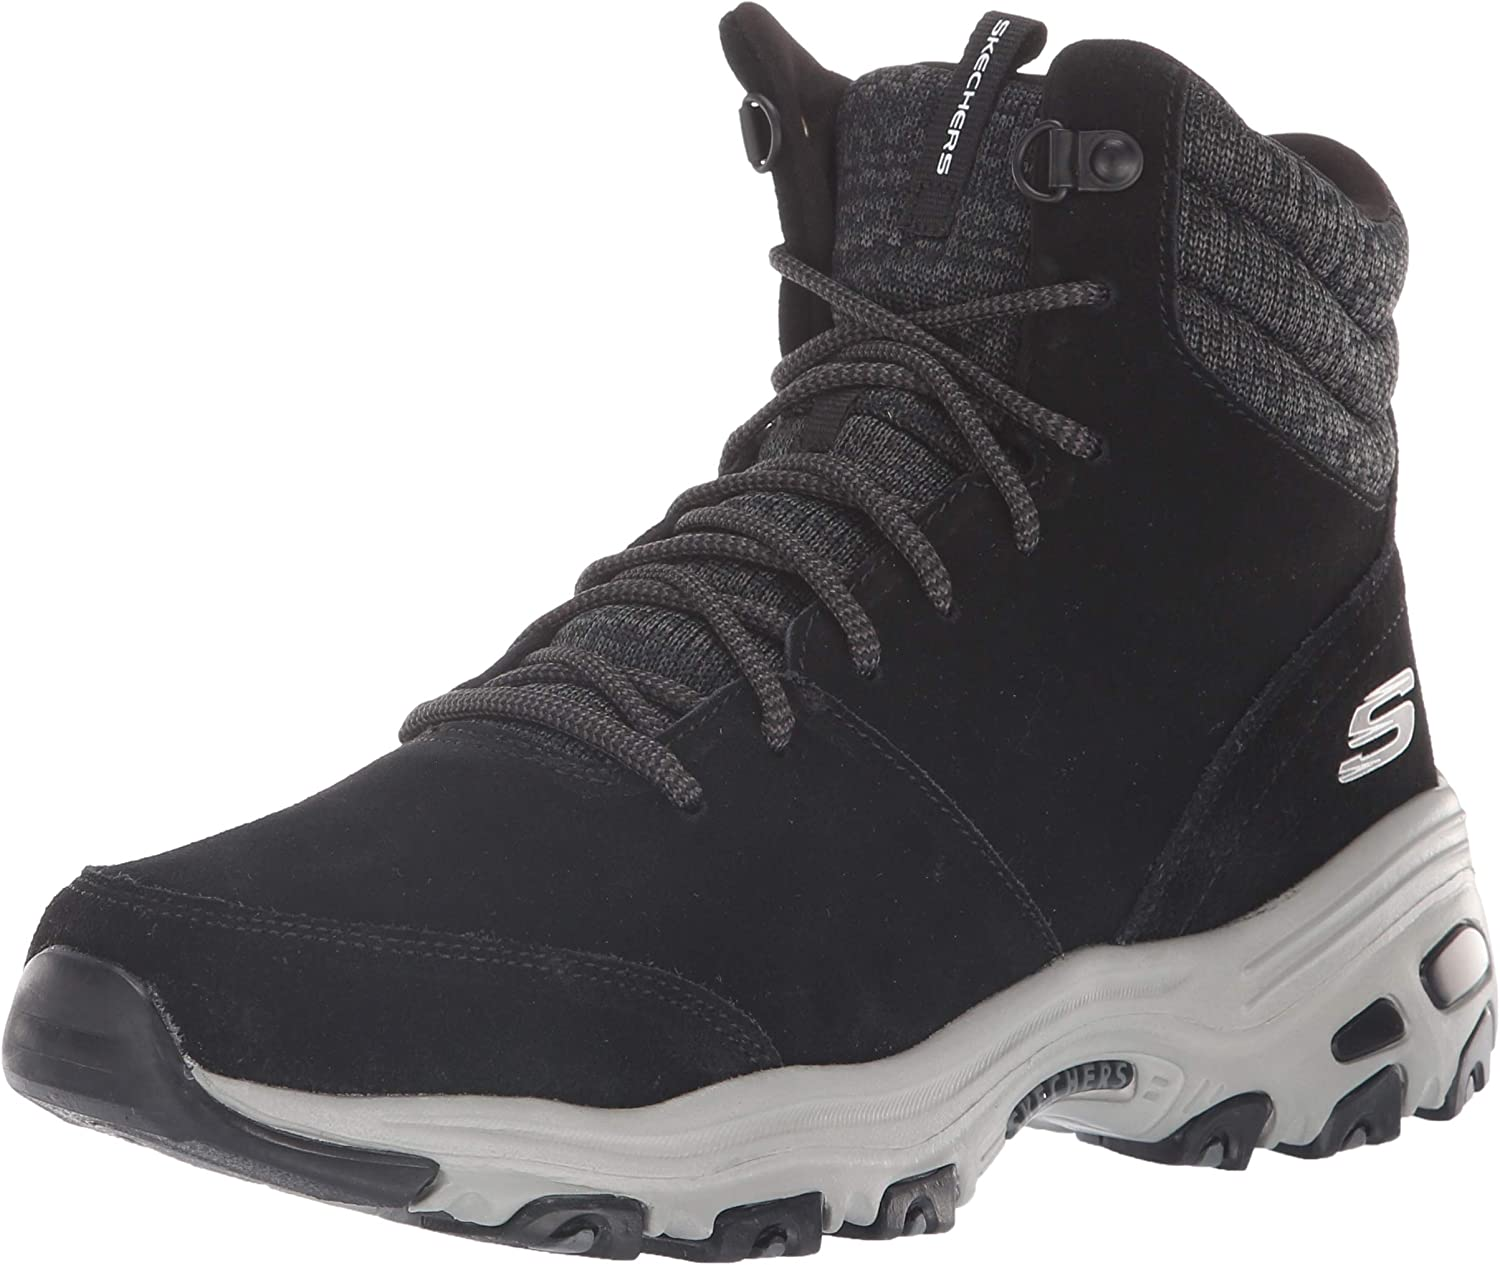 Skechers D'lites-Chill Flurry, Botines para Mujer